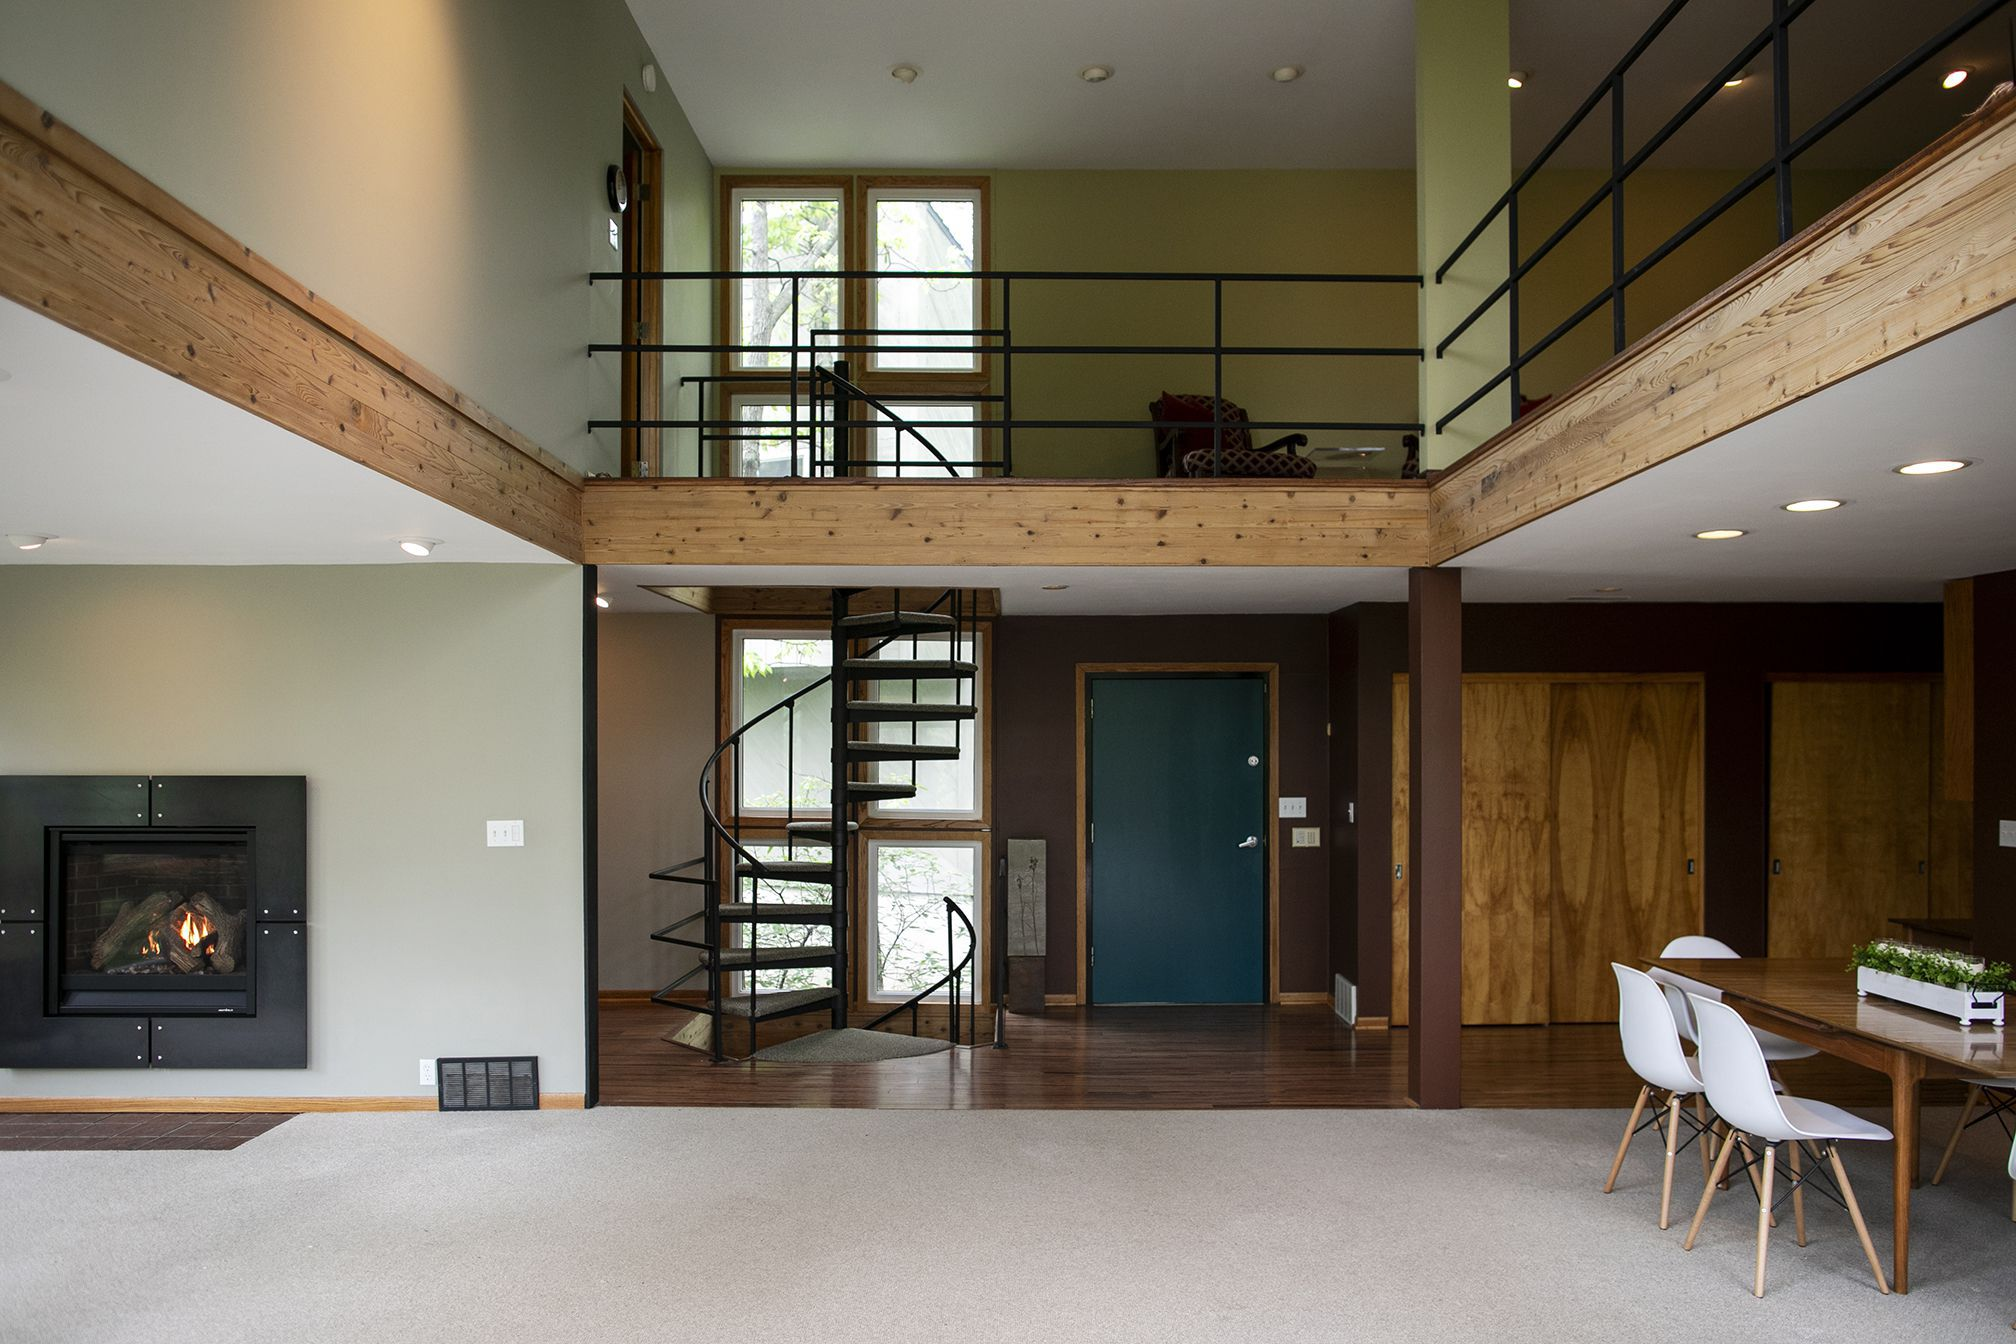 The interior of a home of a home for sale in Waukee, Iowa, with a spiral staircase.